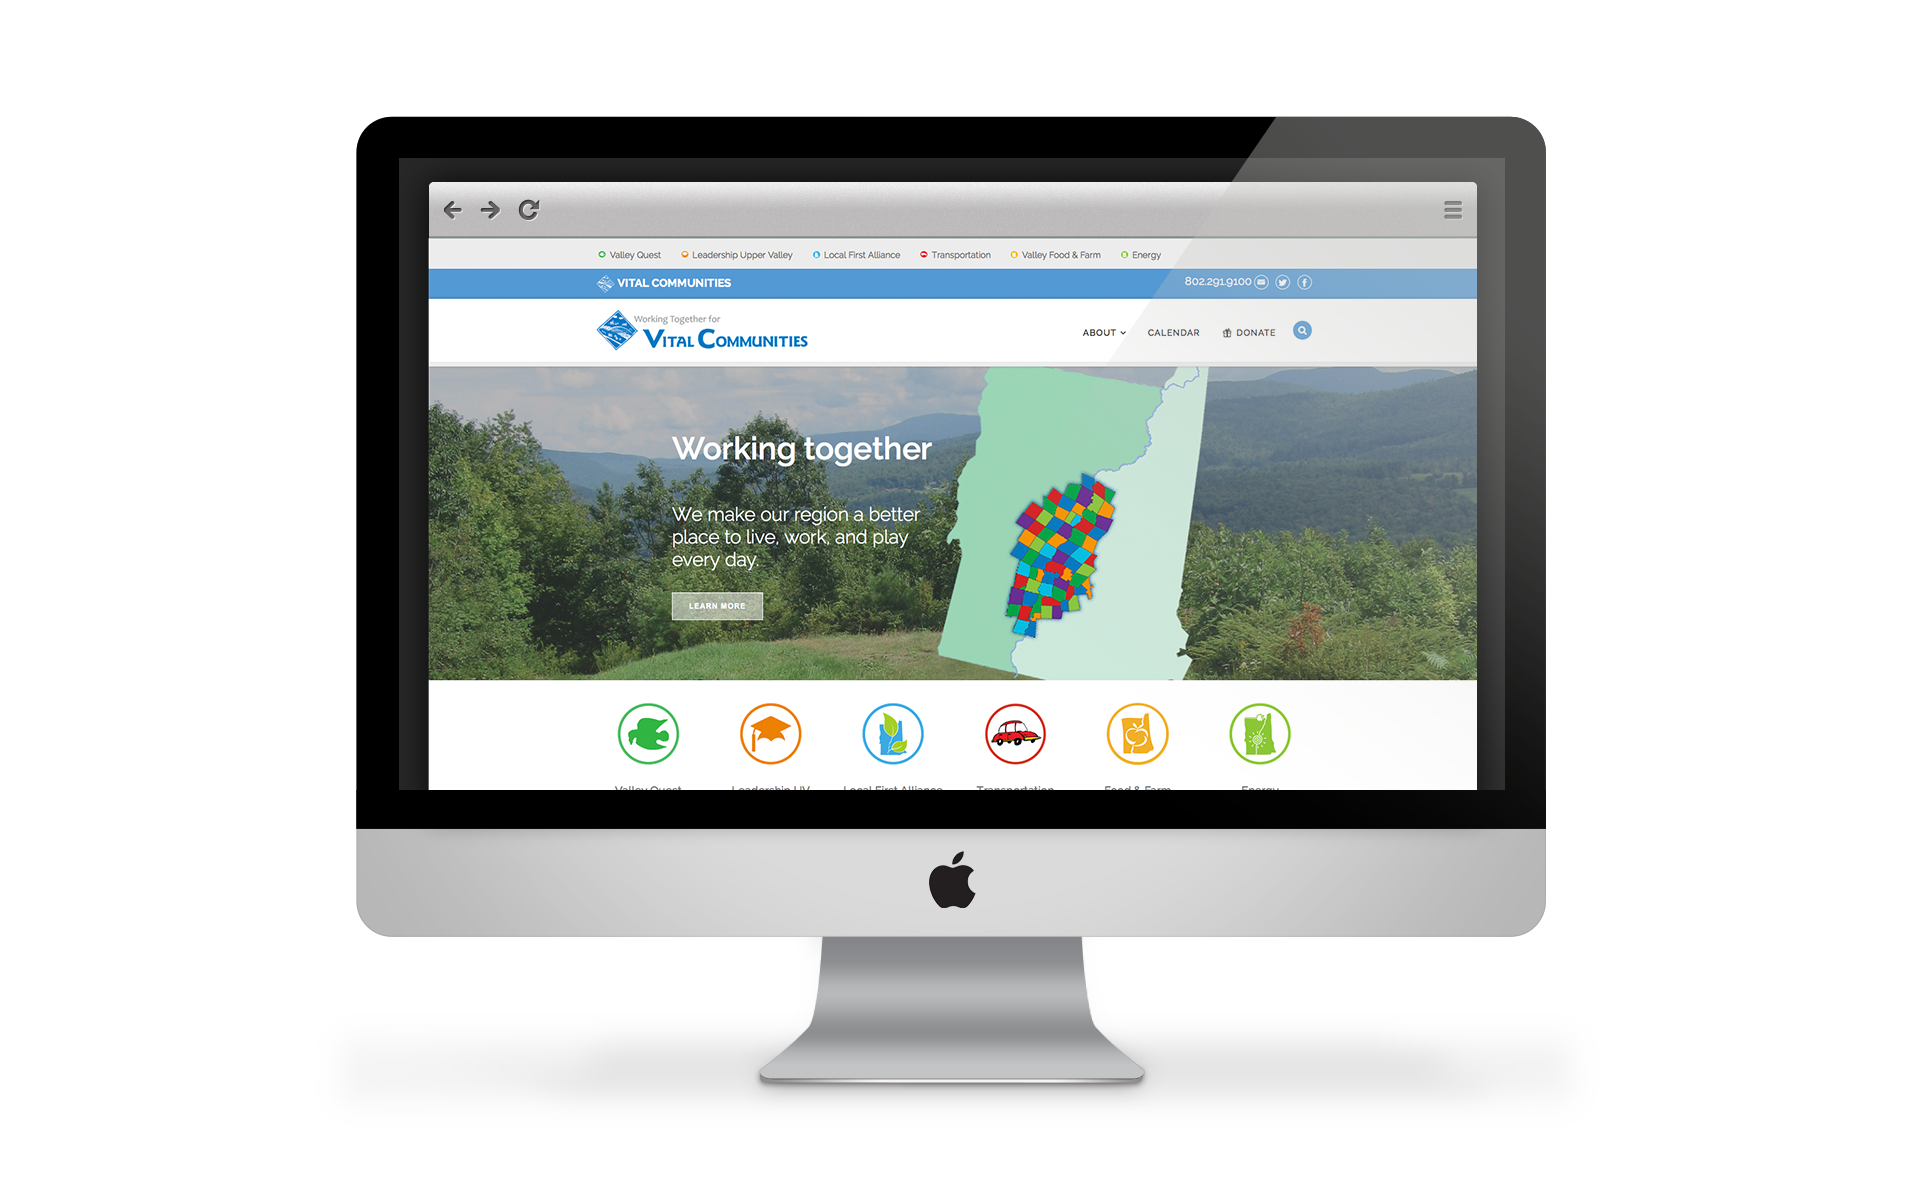 Sample image of the Vital Communities' website displayed on a iMac